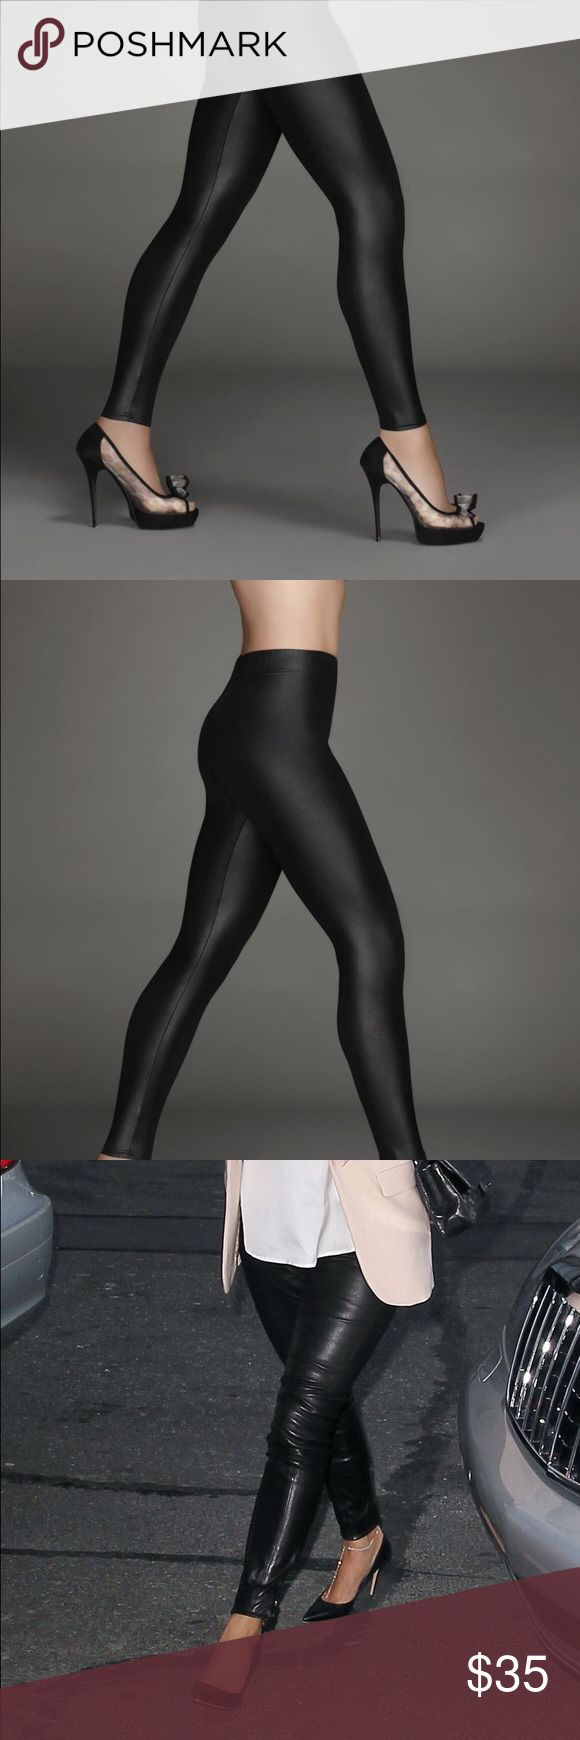 Kardashian Kollection Black Faux Leather Leggings Faux black leather leggings. I don't think I ever wore these. High-waisted and long enough for the tall ladies! Perfect for a date night look. Kardashian Kollection Pants Leggings